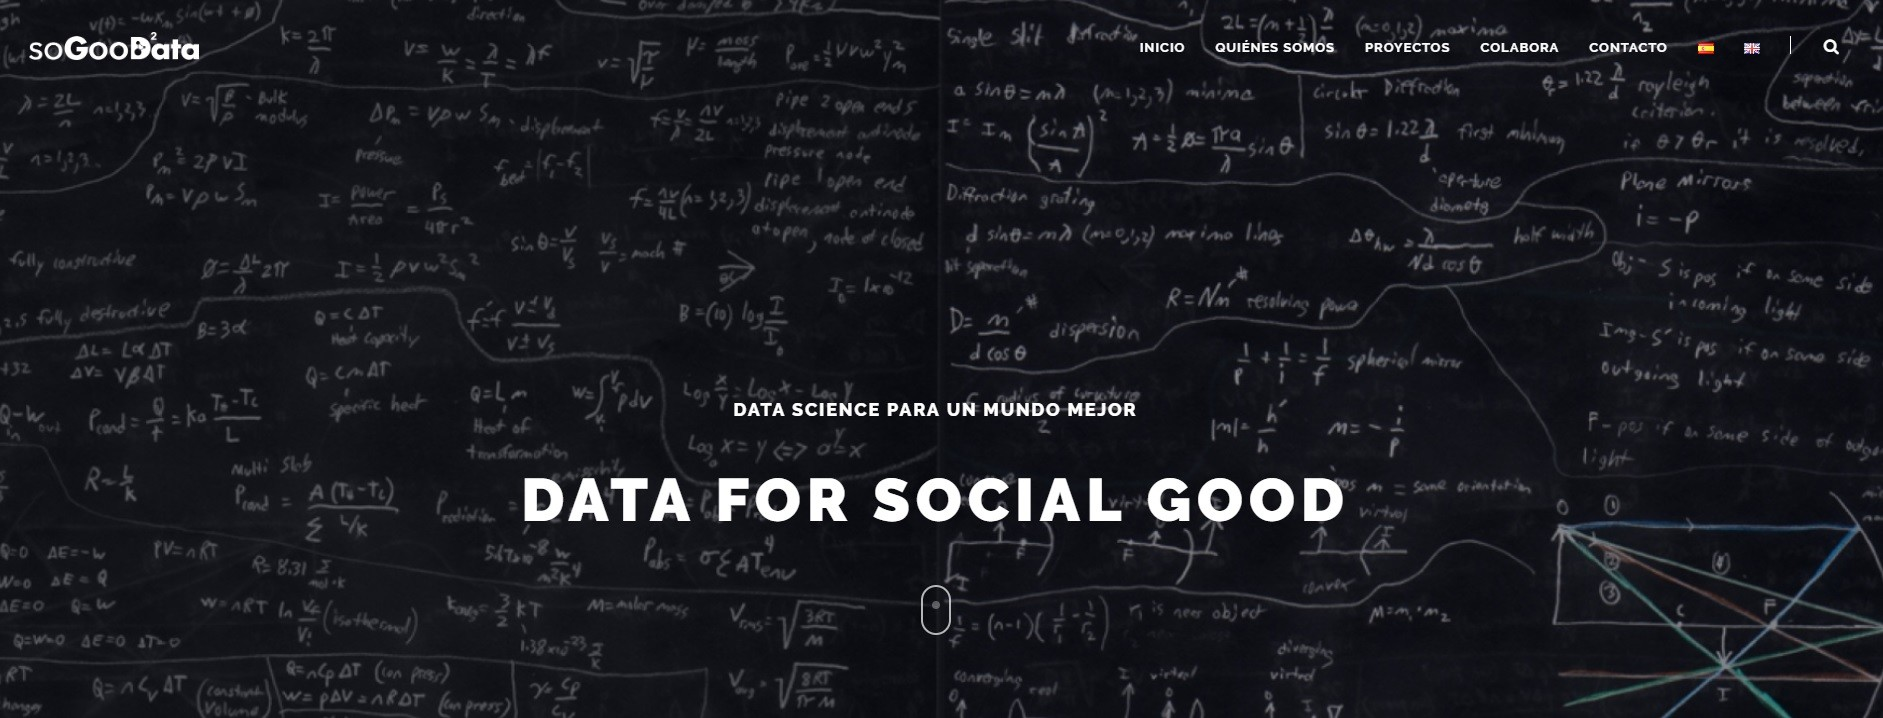 So Good Data es una ONG para estudiar los llantos del bebé